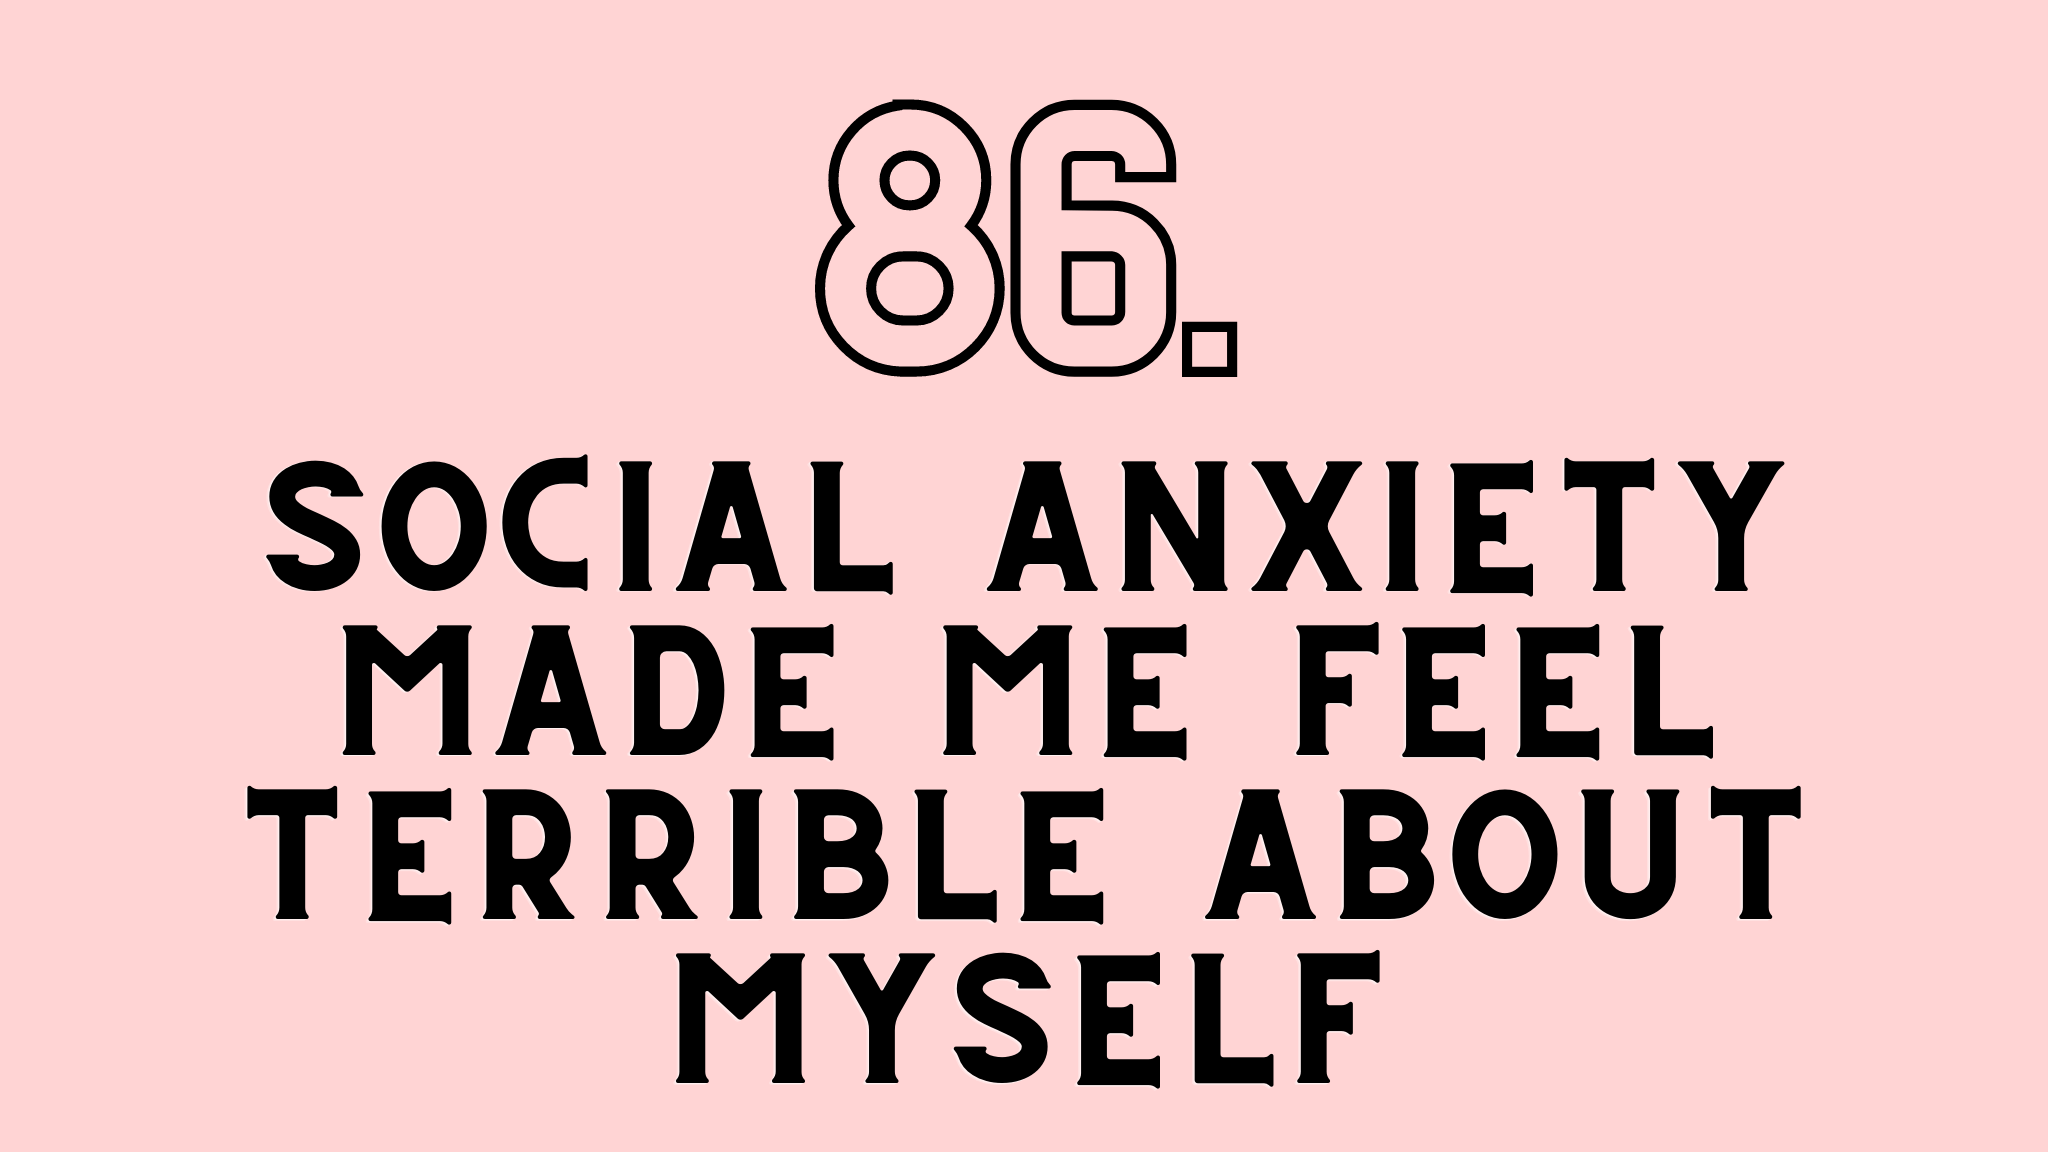 social anxiety made me feel terrible about myself